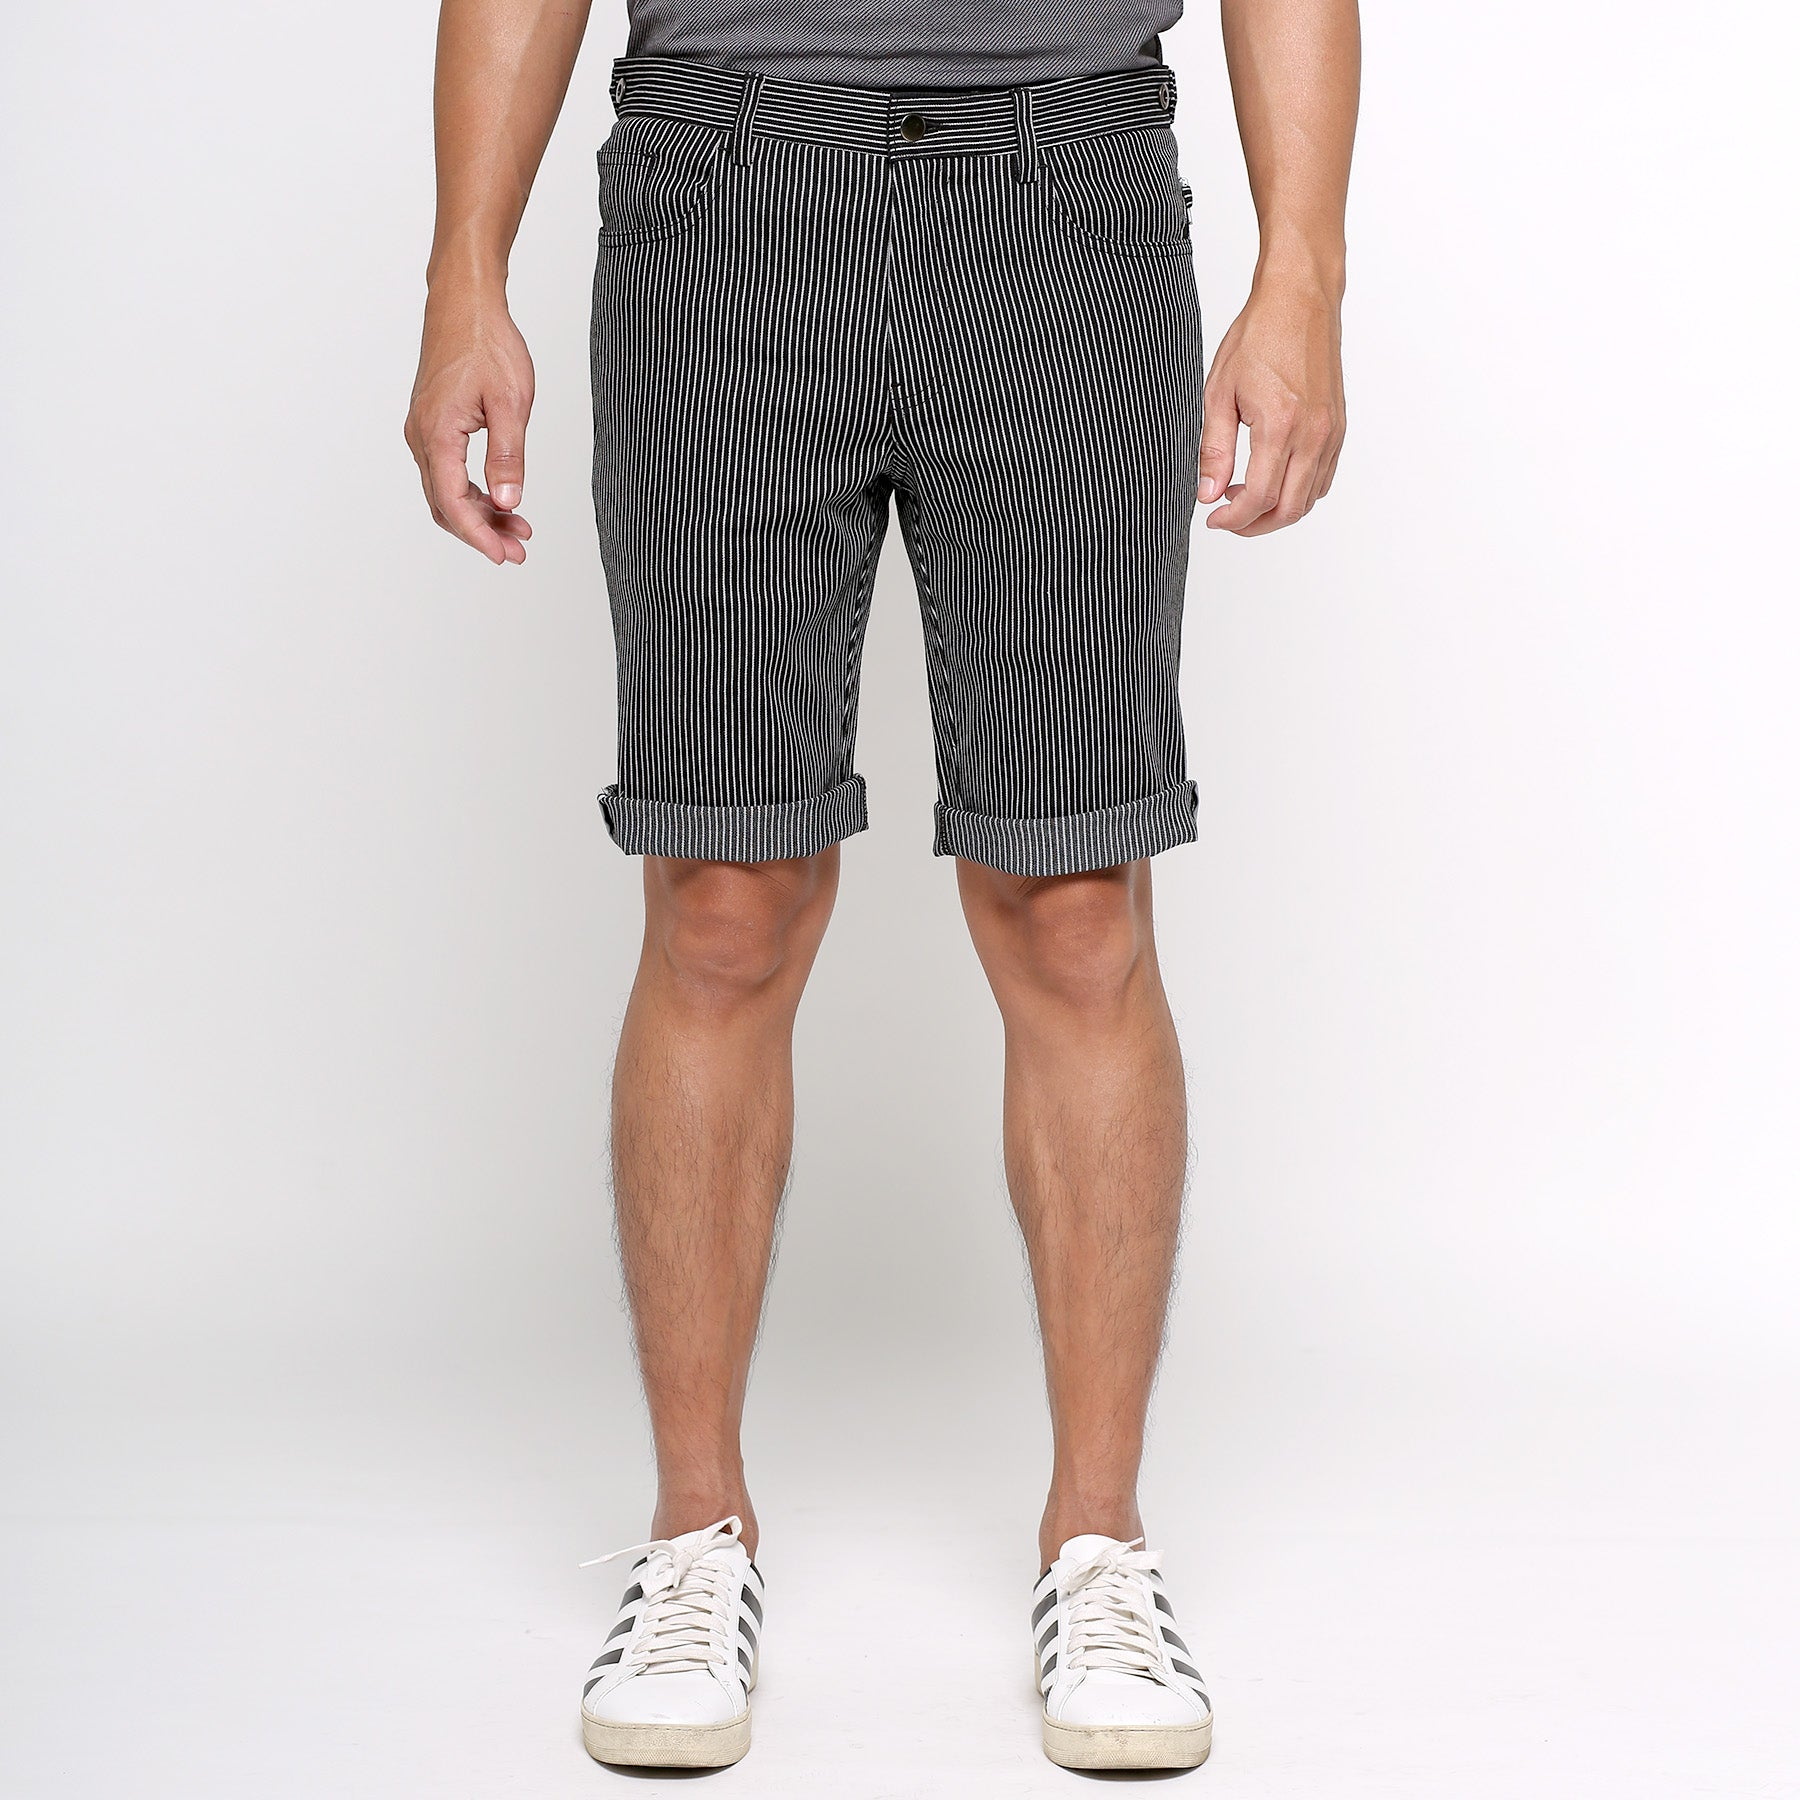 urban shorts travel cycling japan bangkok menswear stripe denim